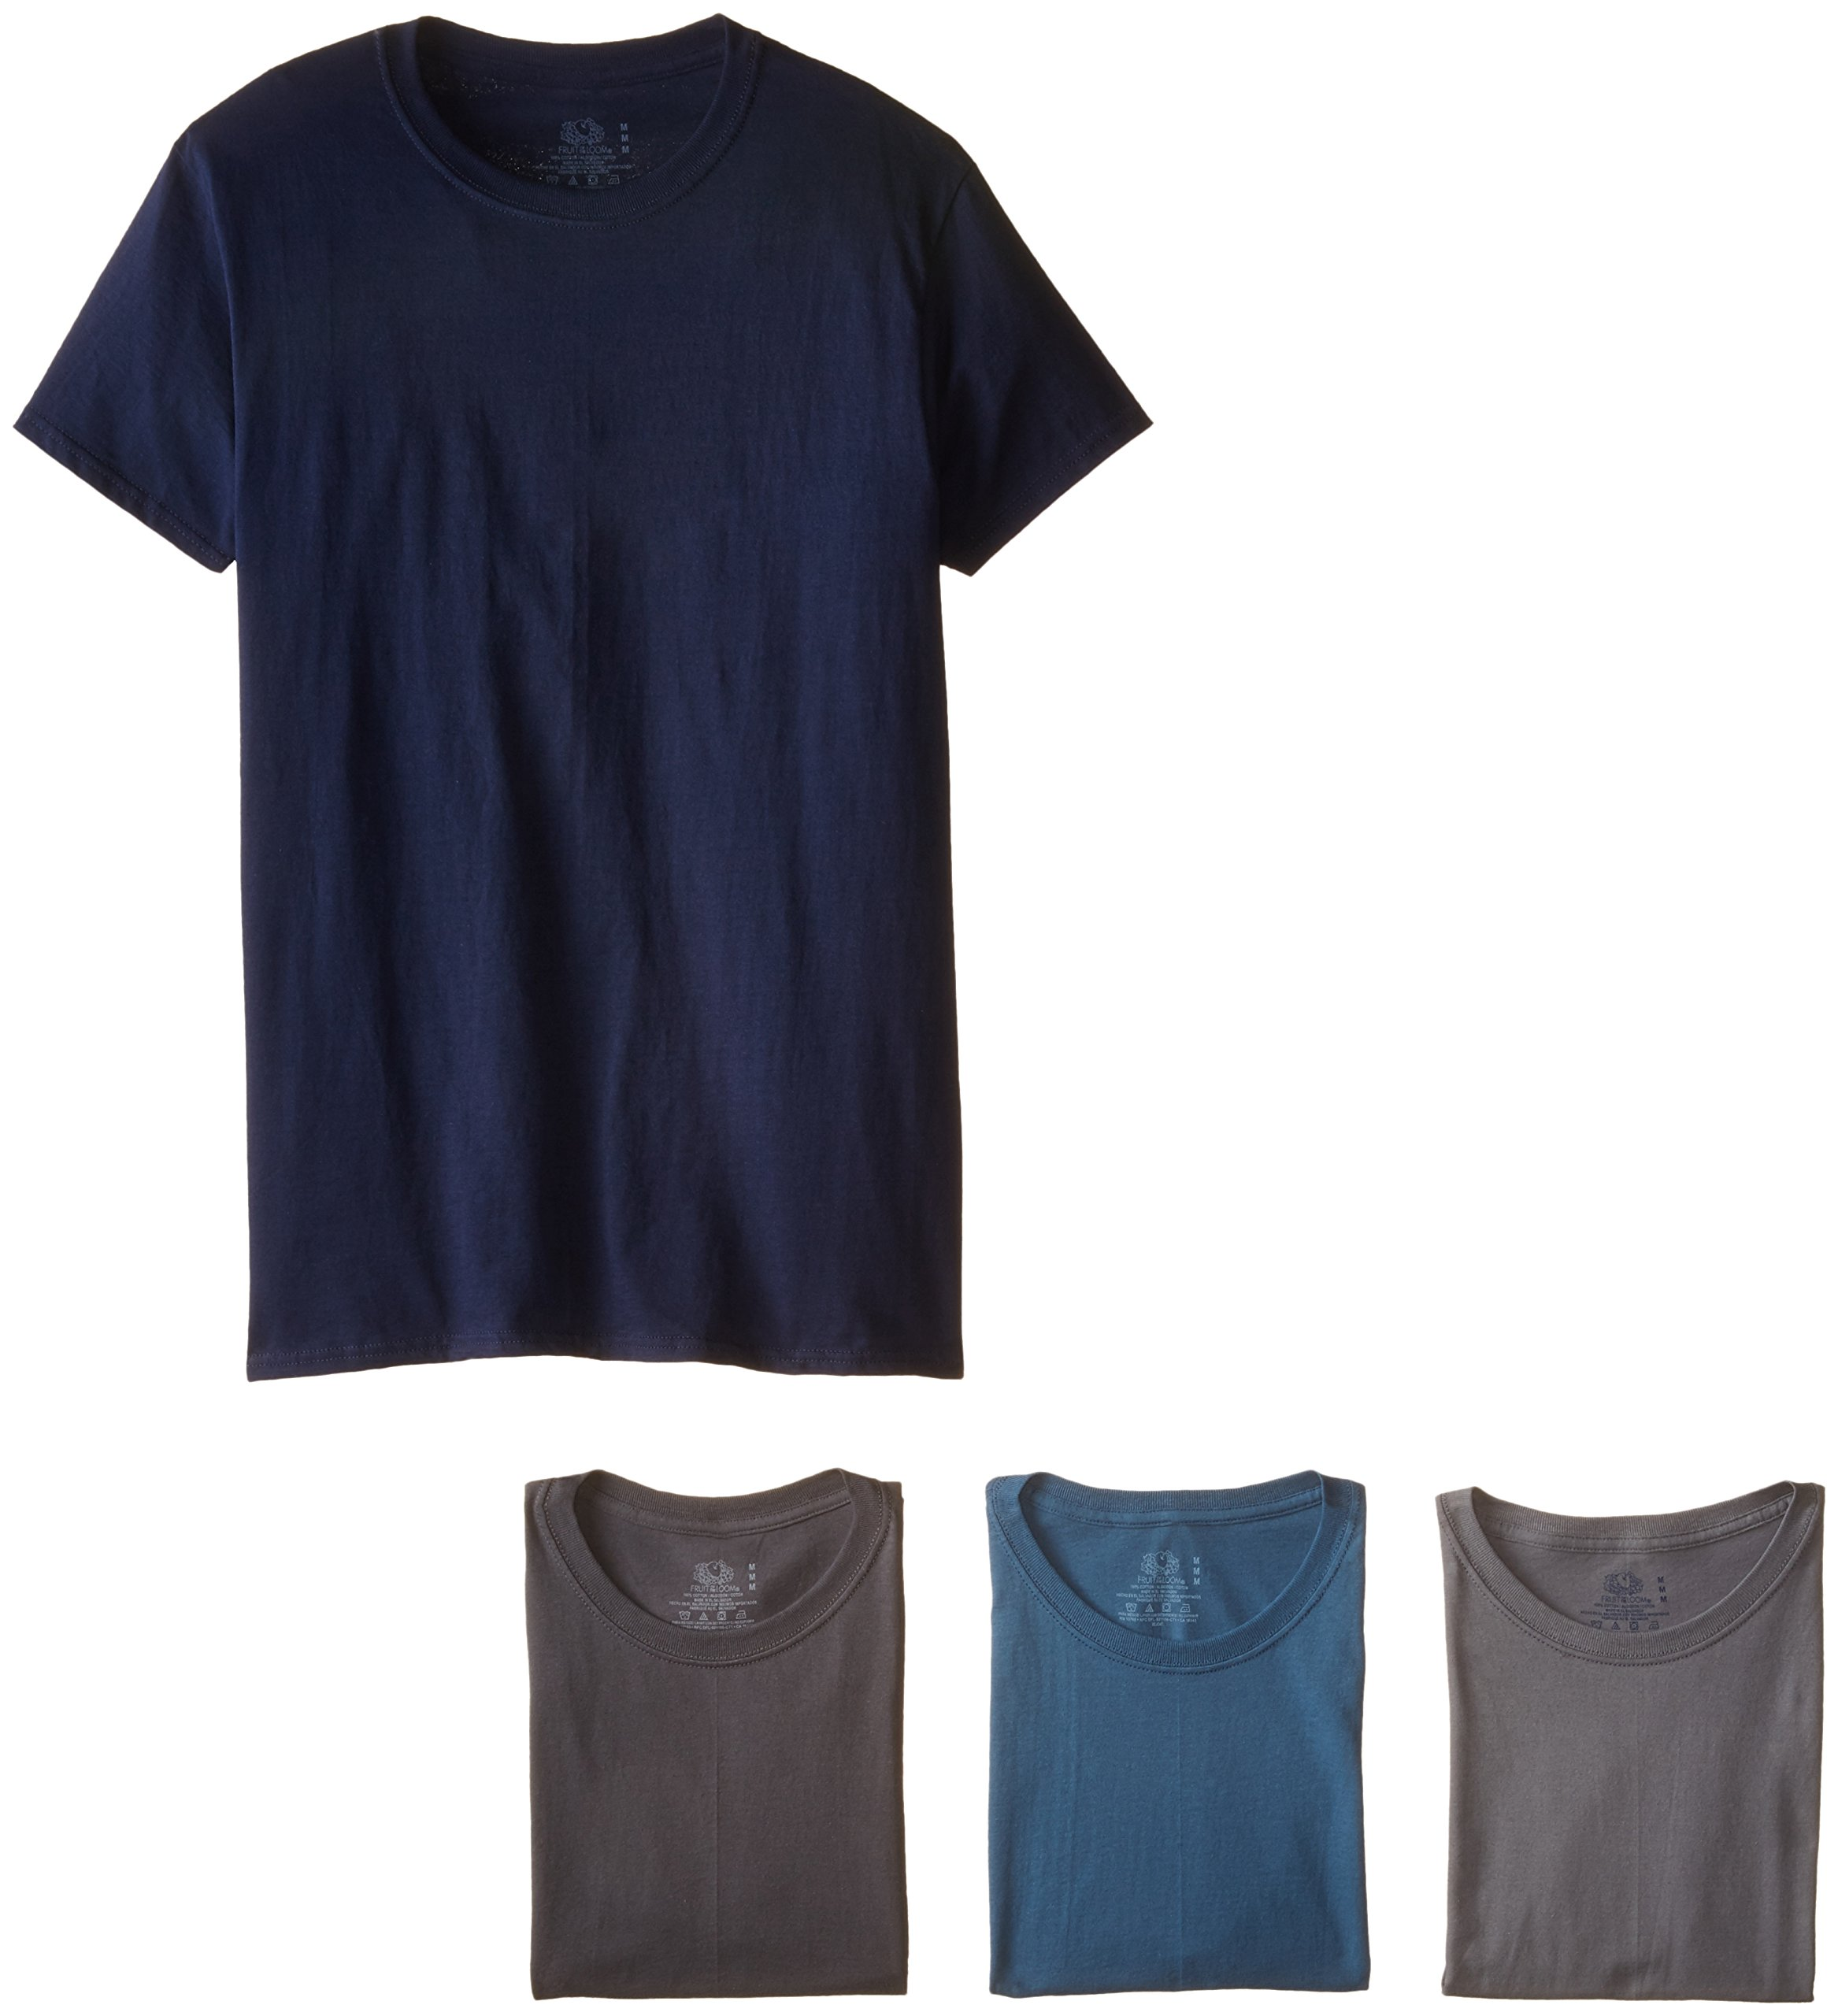 Fruit of the Loom Men's Crew Neck T-Shirt (Pack of 4), Assorted, X-Large